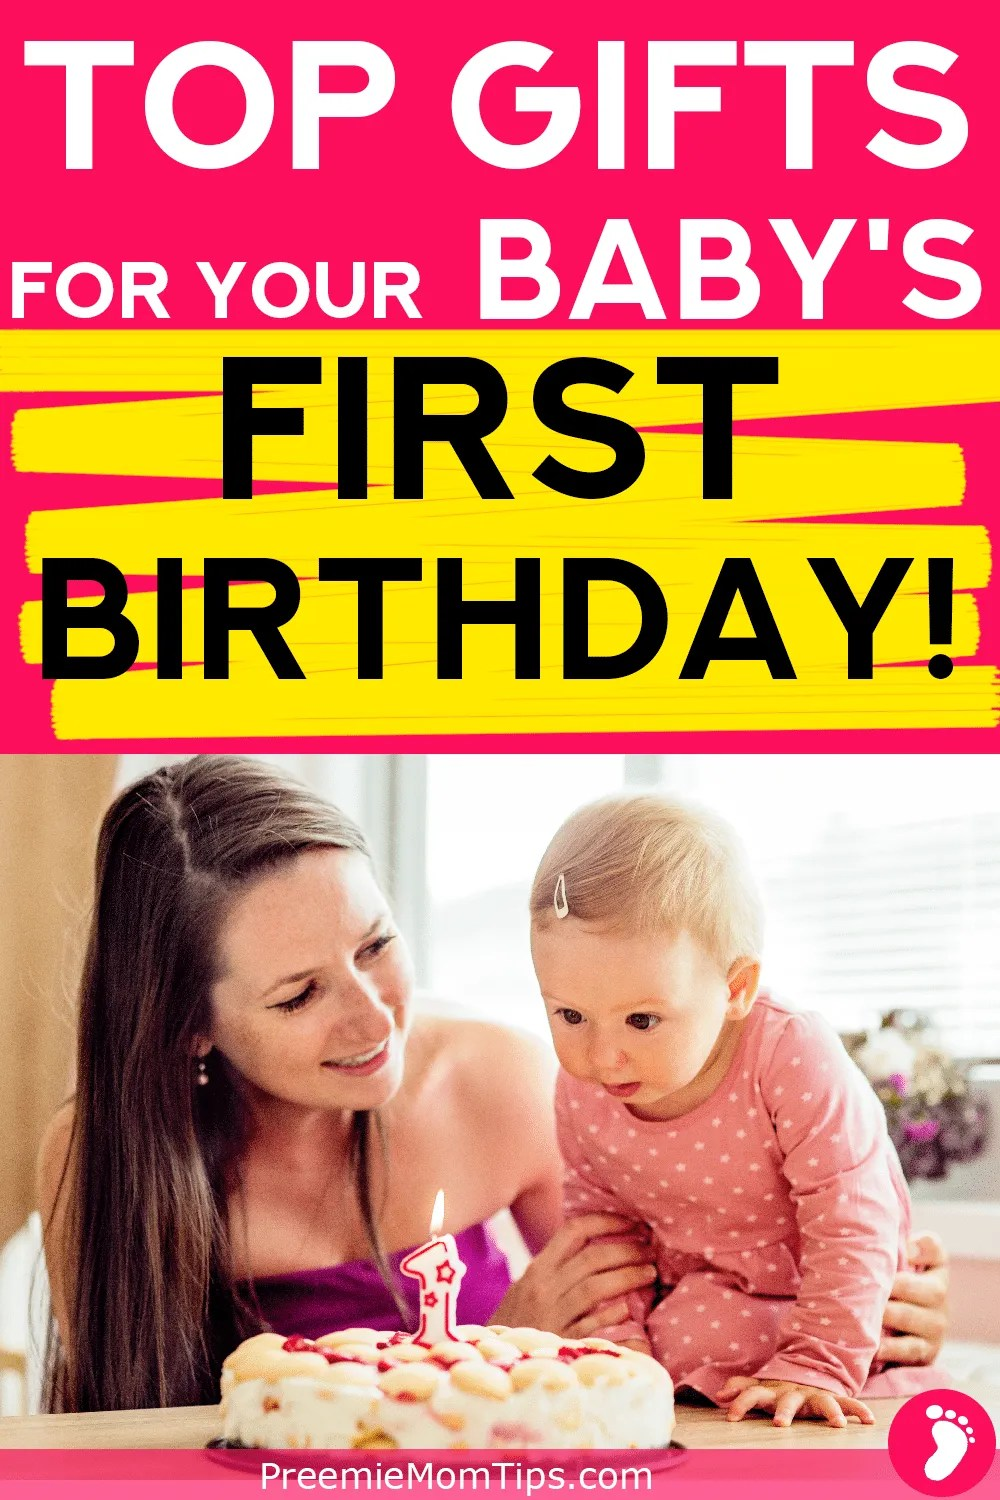 The First Birthday Is Such A Wonderful Milestones For Both